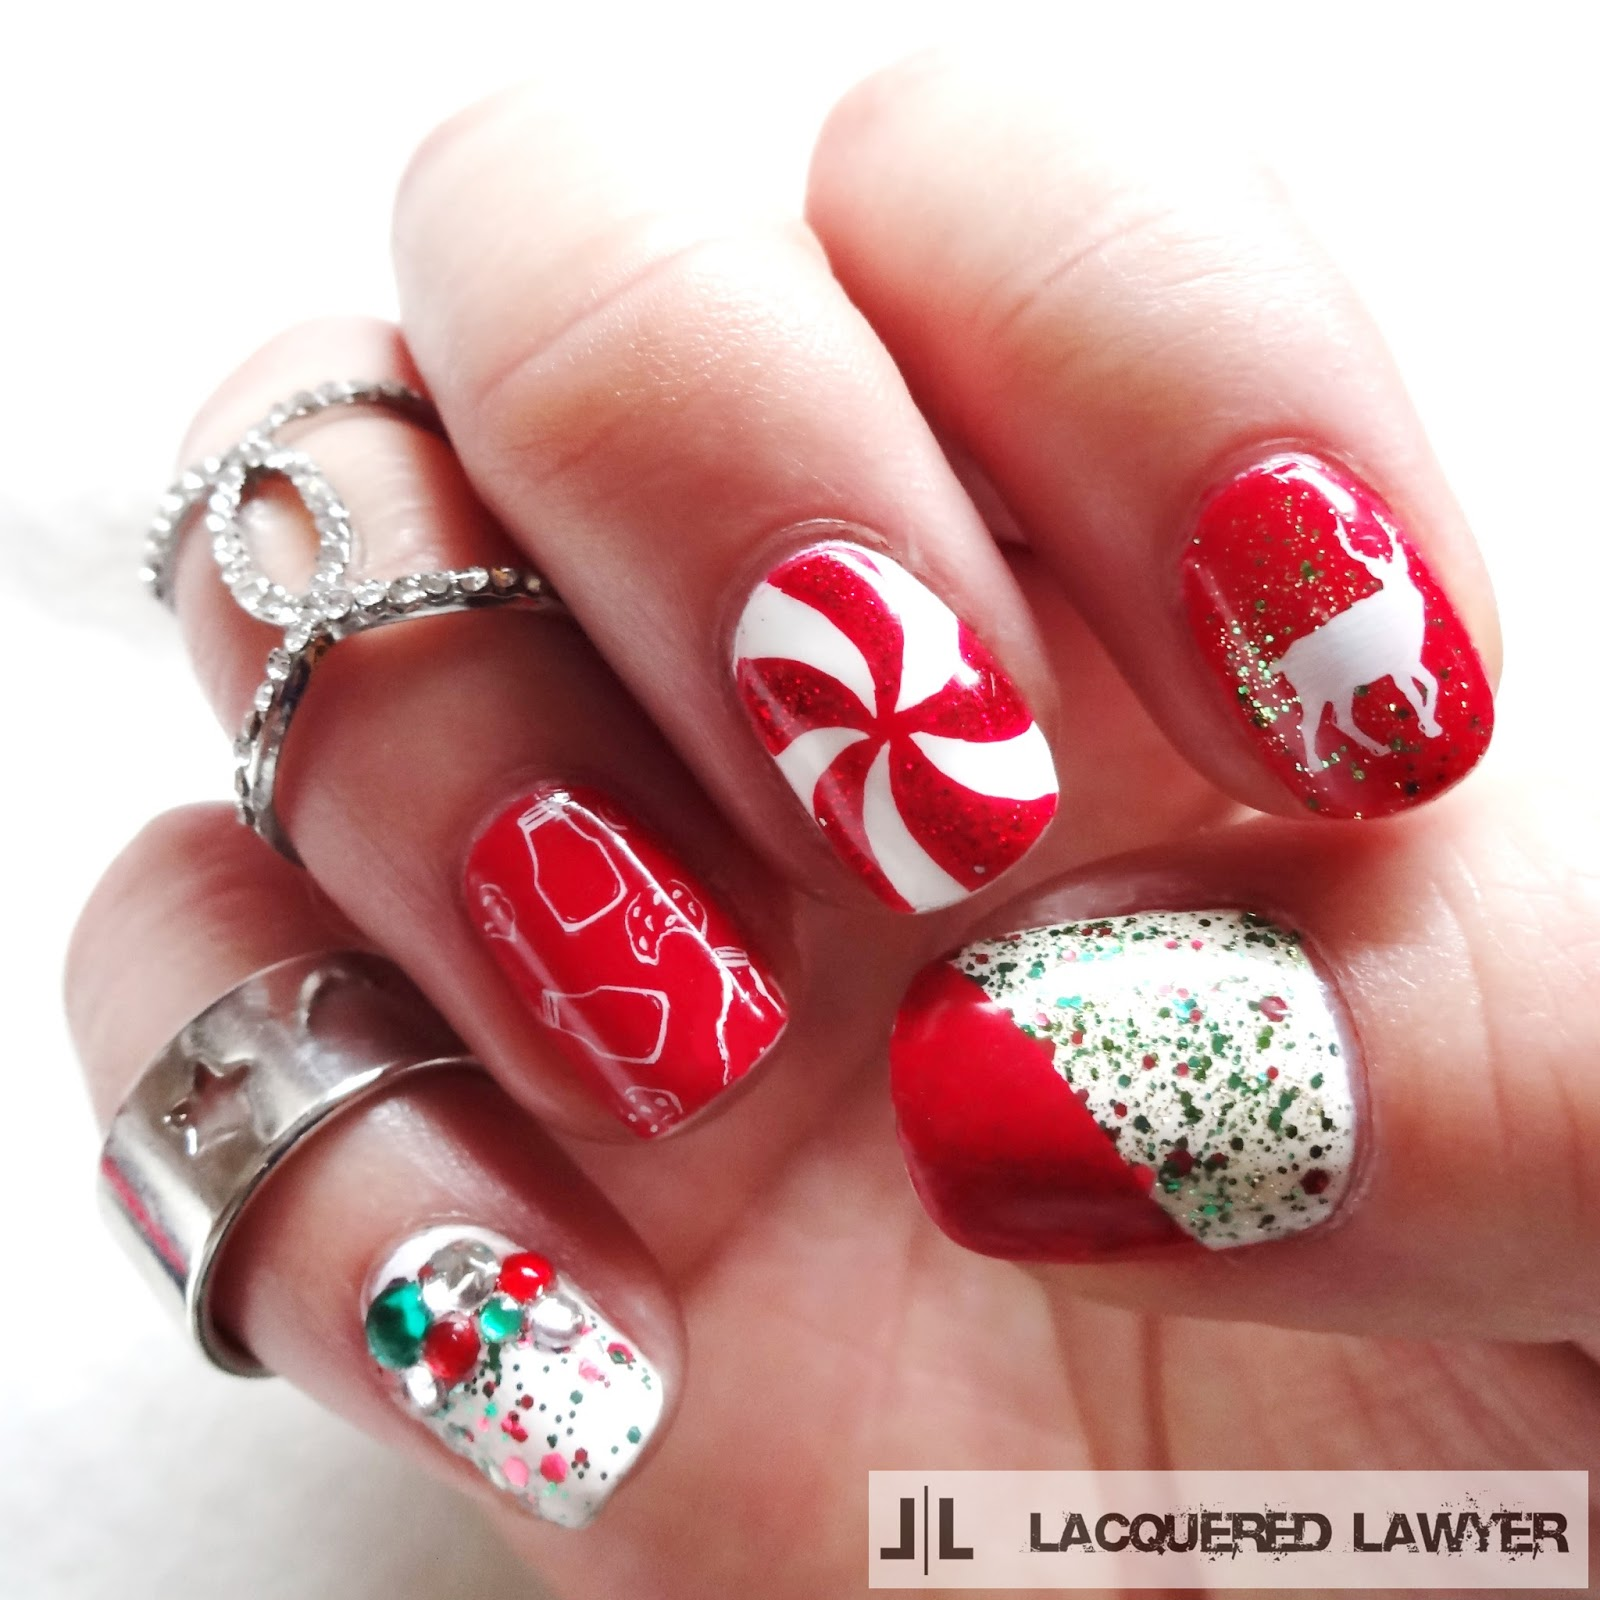 Lacquered Lawyer Nail Art Blog Merry Christmas